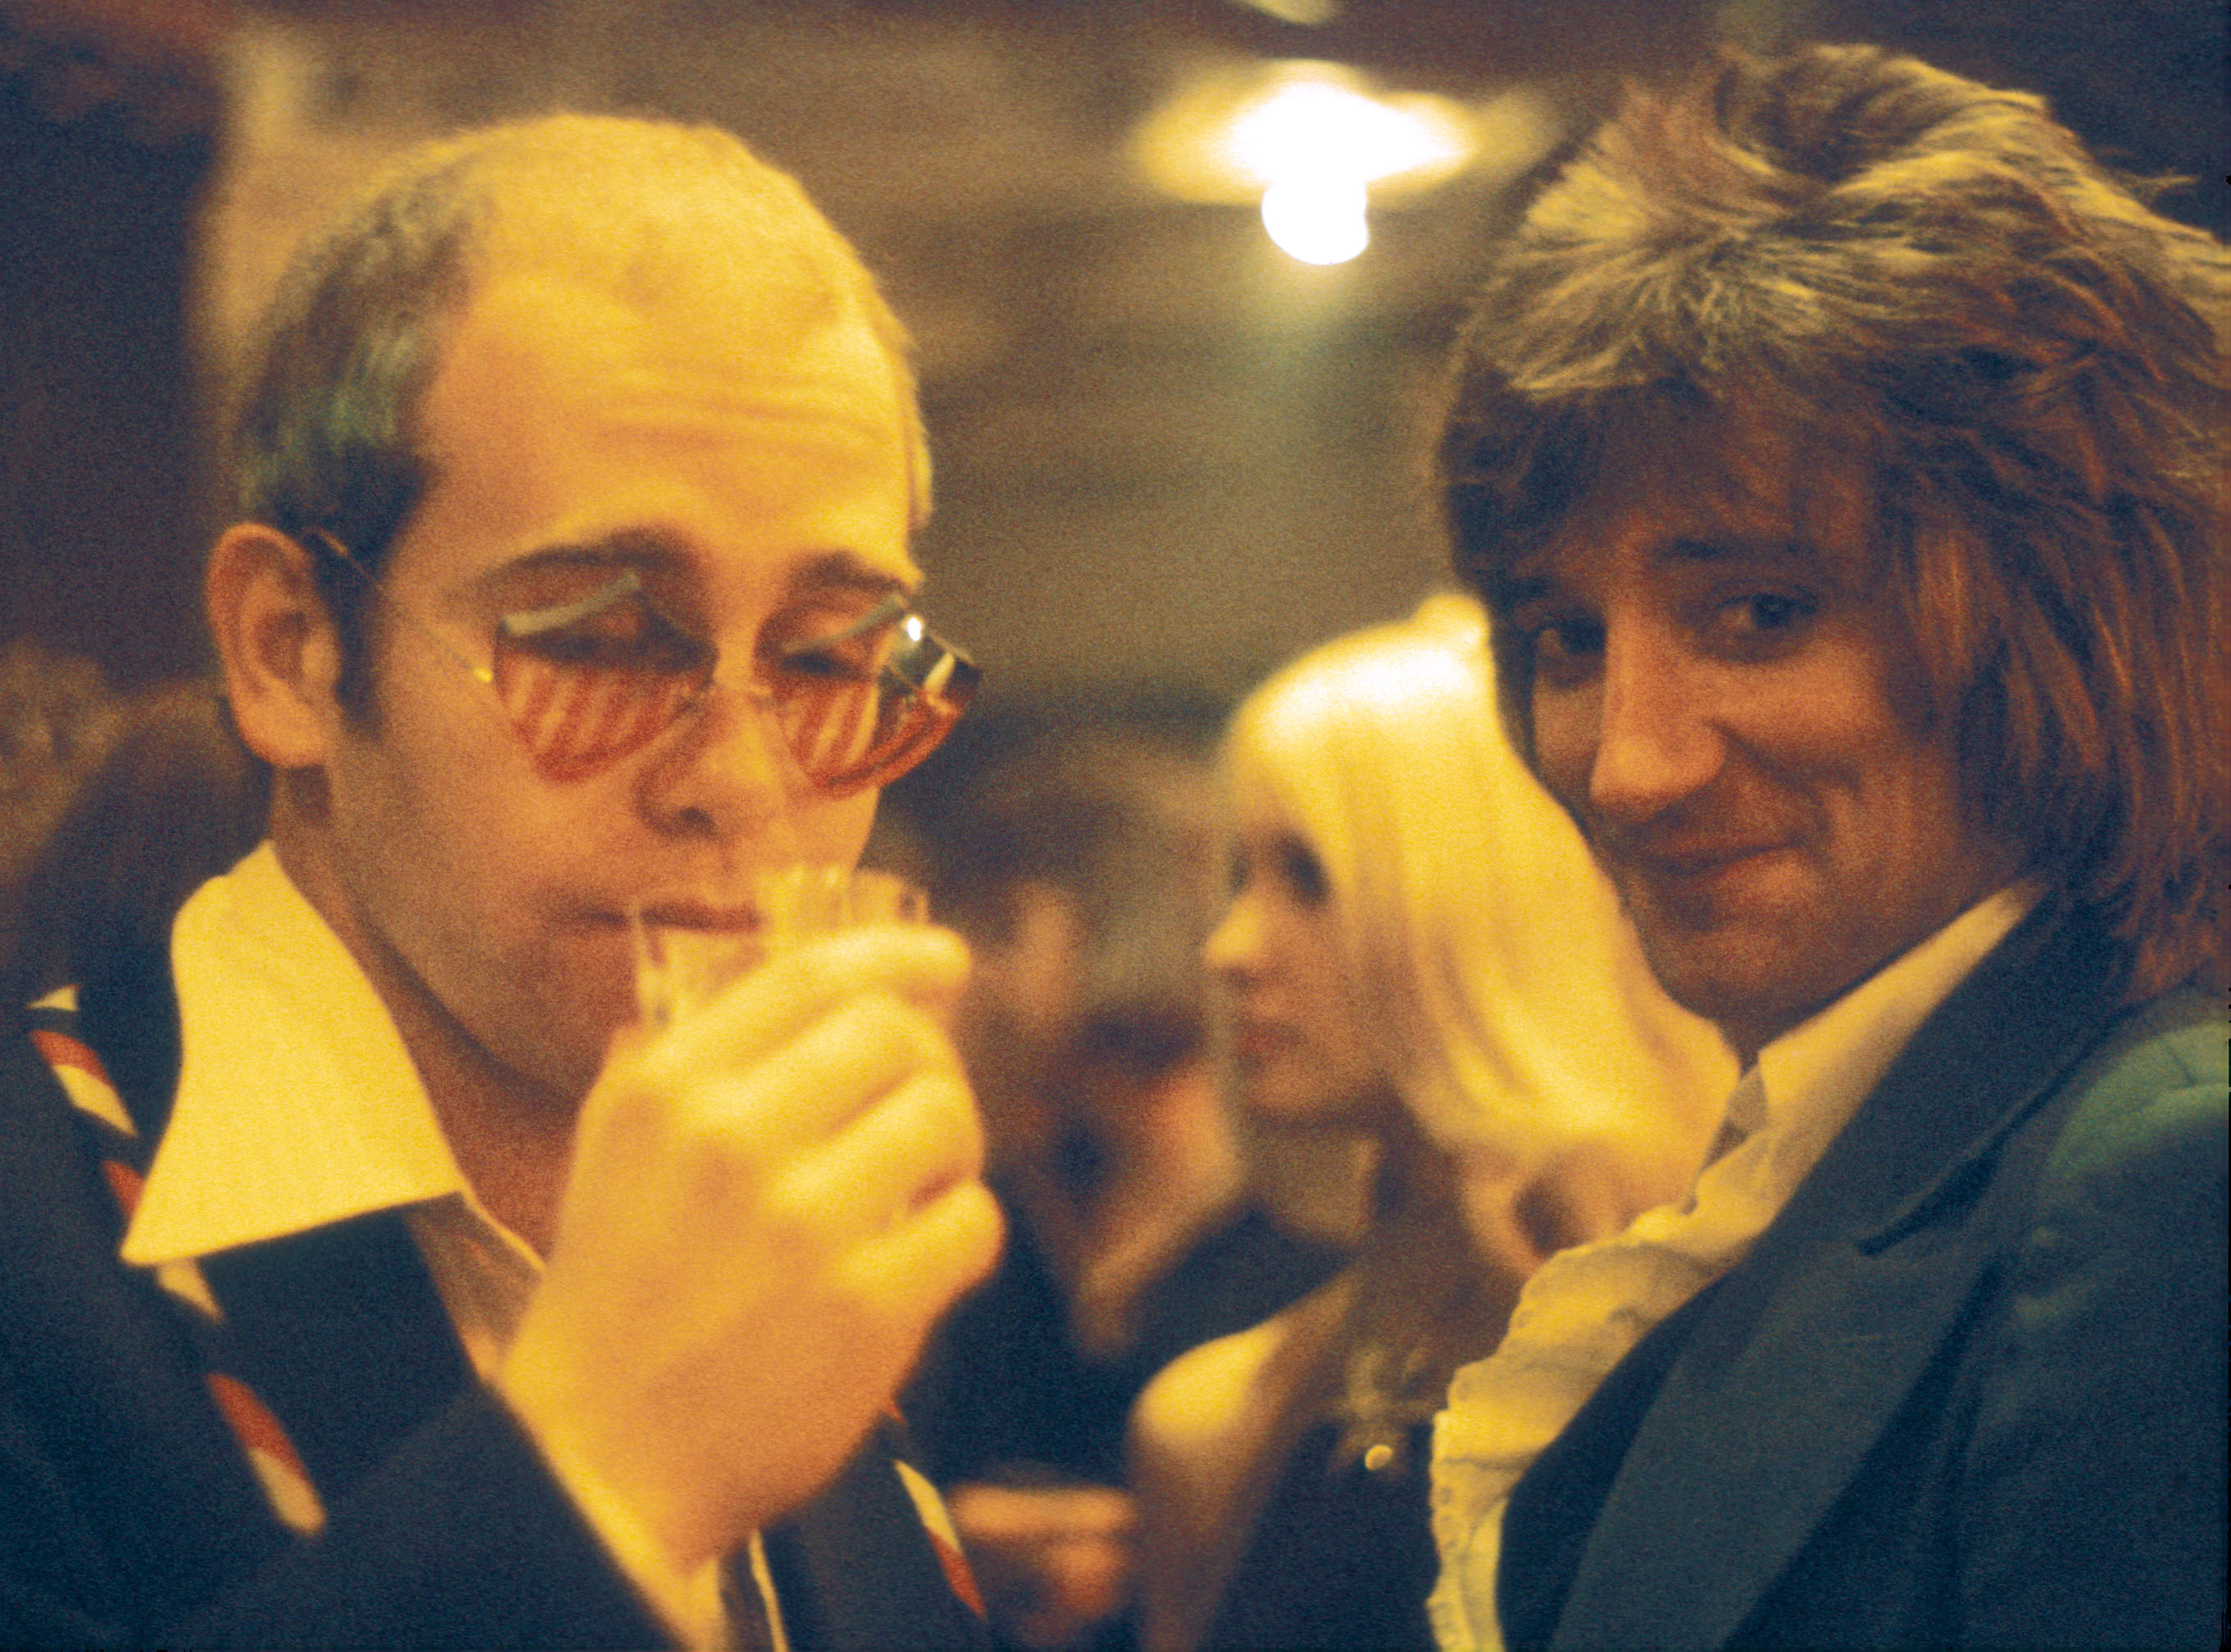 Elton and Rod first met as neighbors in London in the 1970s